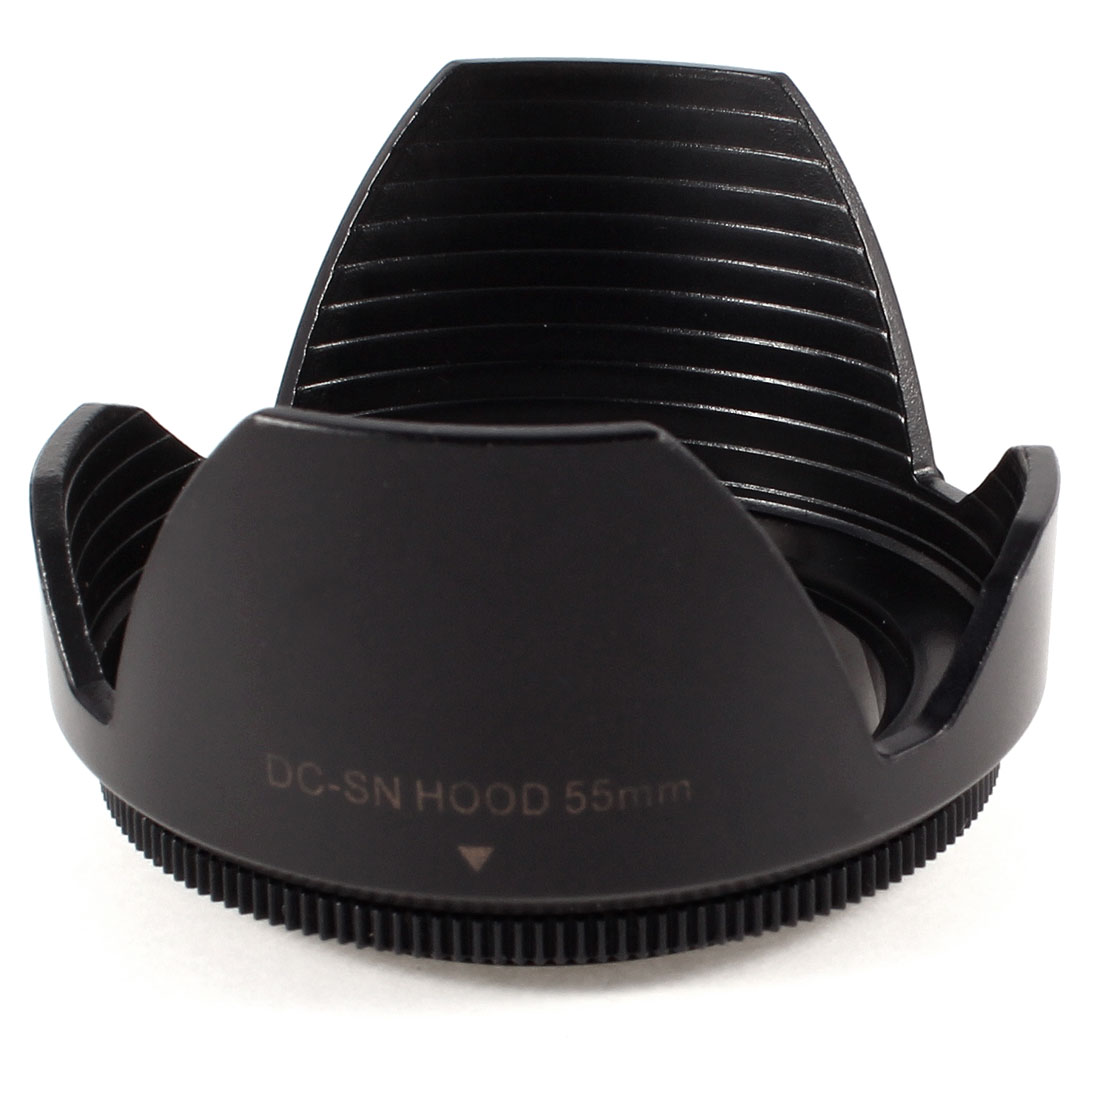 Black Plastic Crown Flower Shape Screw Mount 55mm Lens Hood